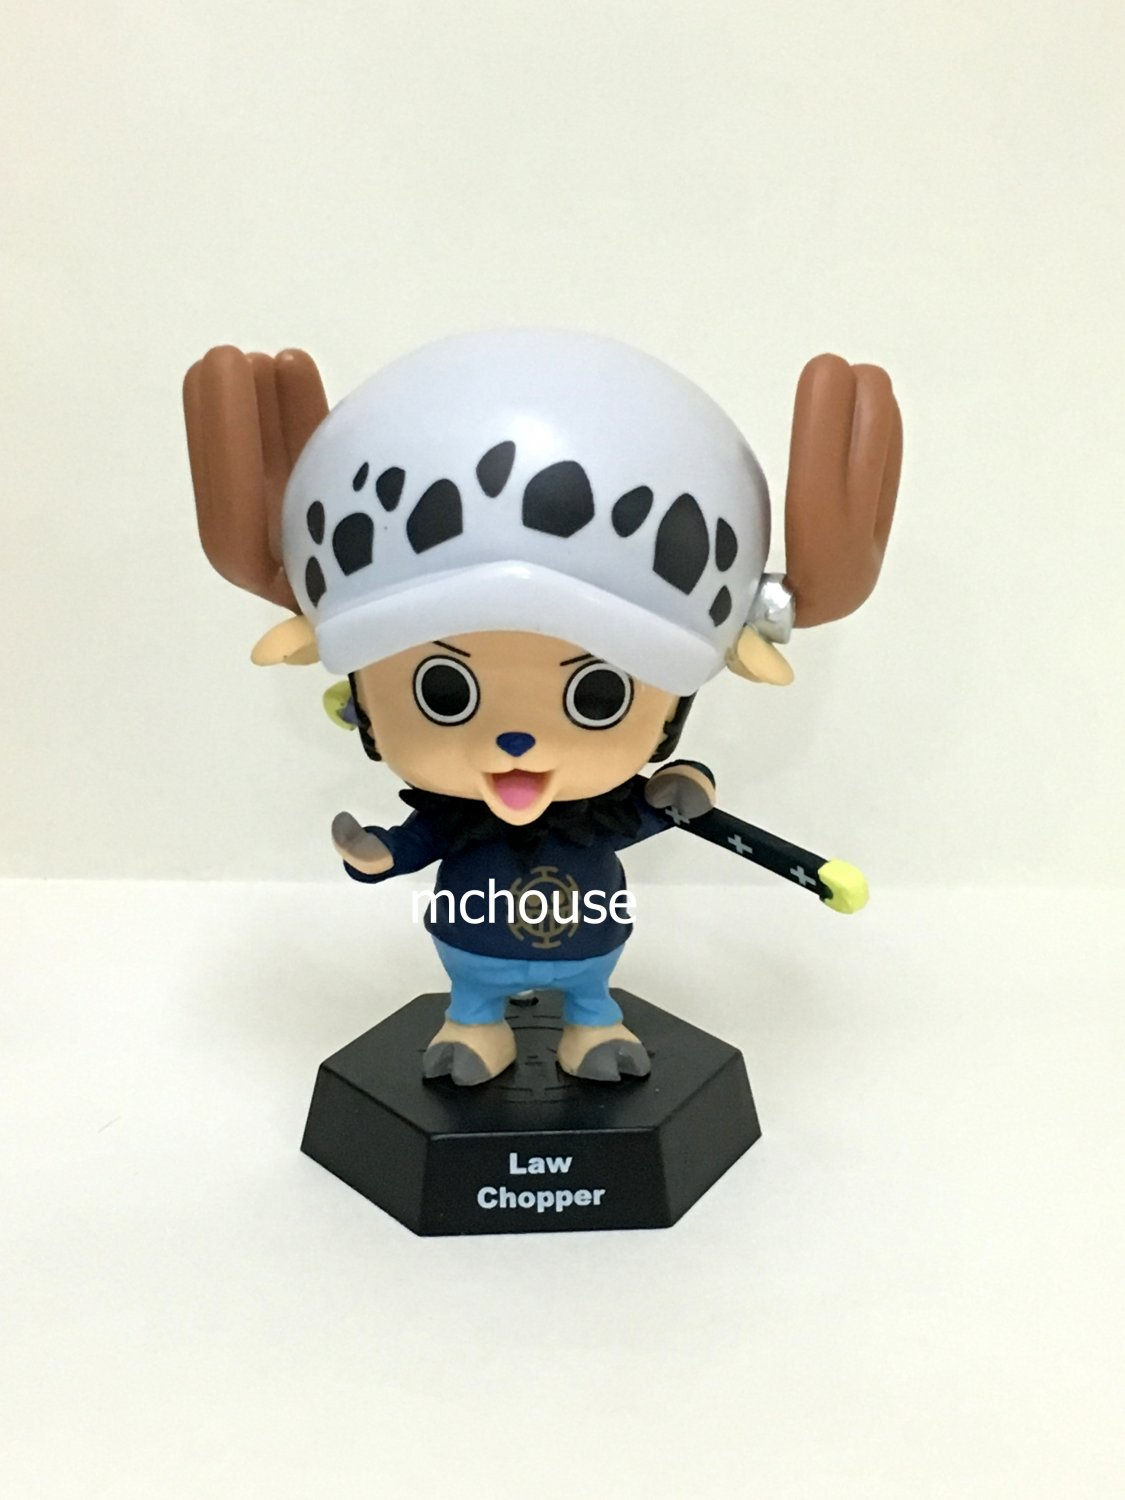 7-11 HK One Piece 2016 Chopper World Figures Law Chopper